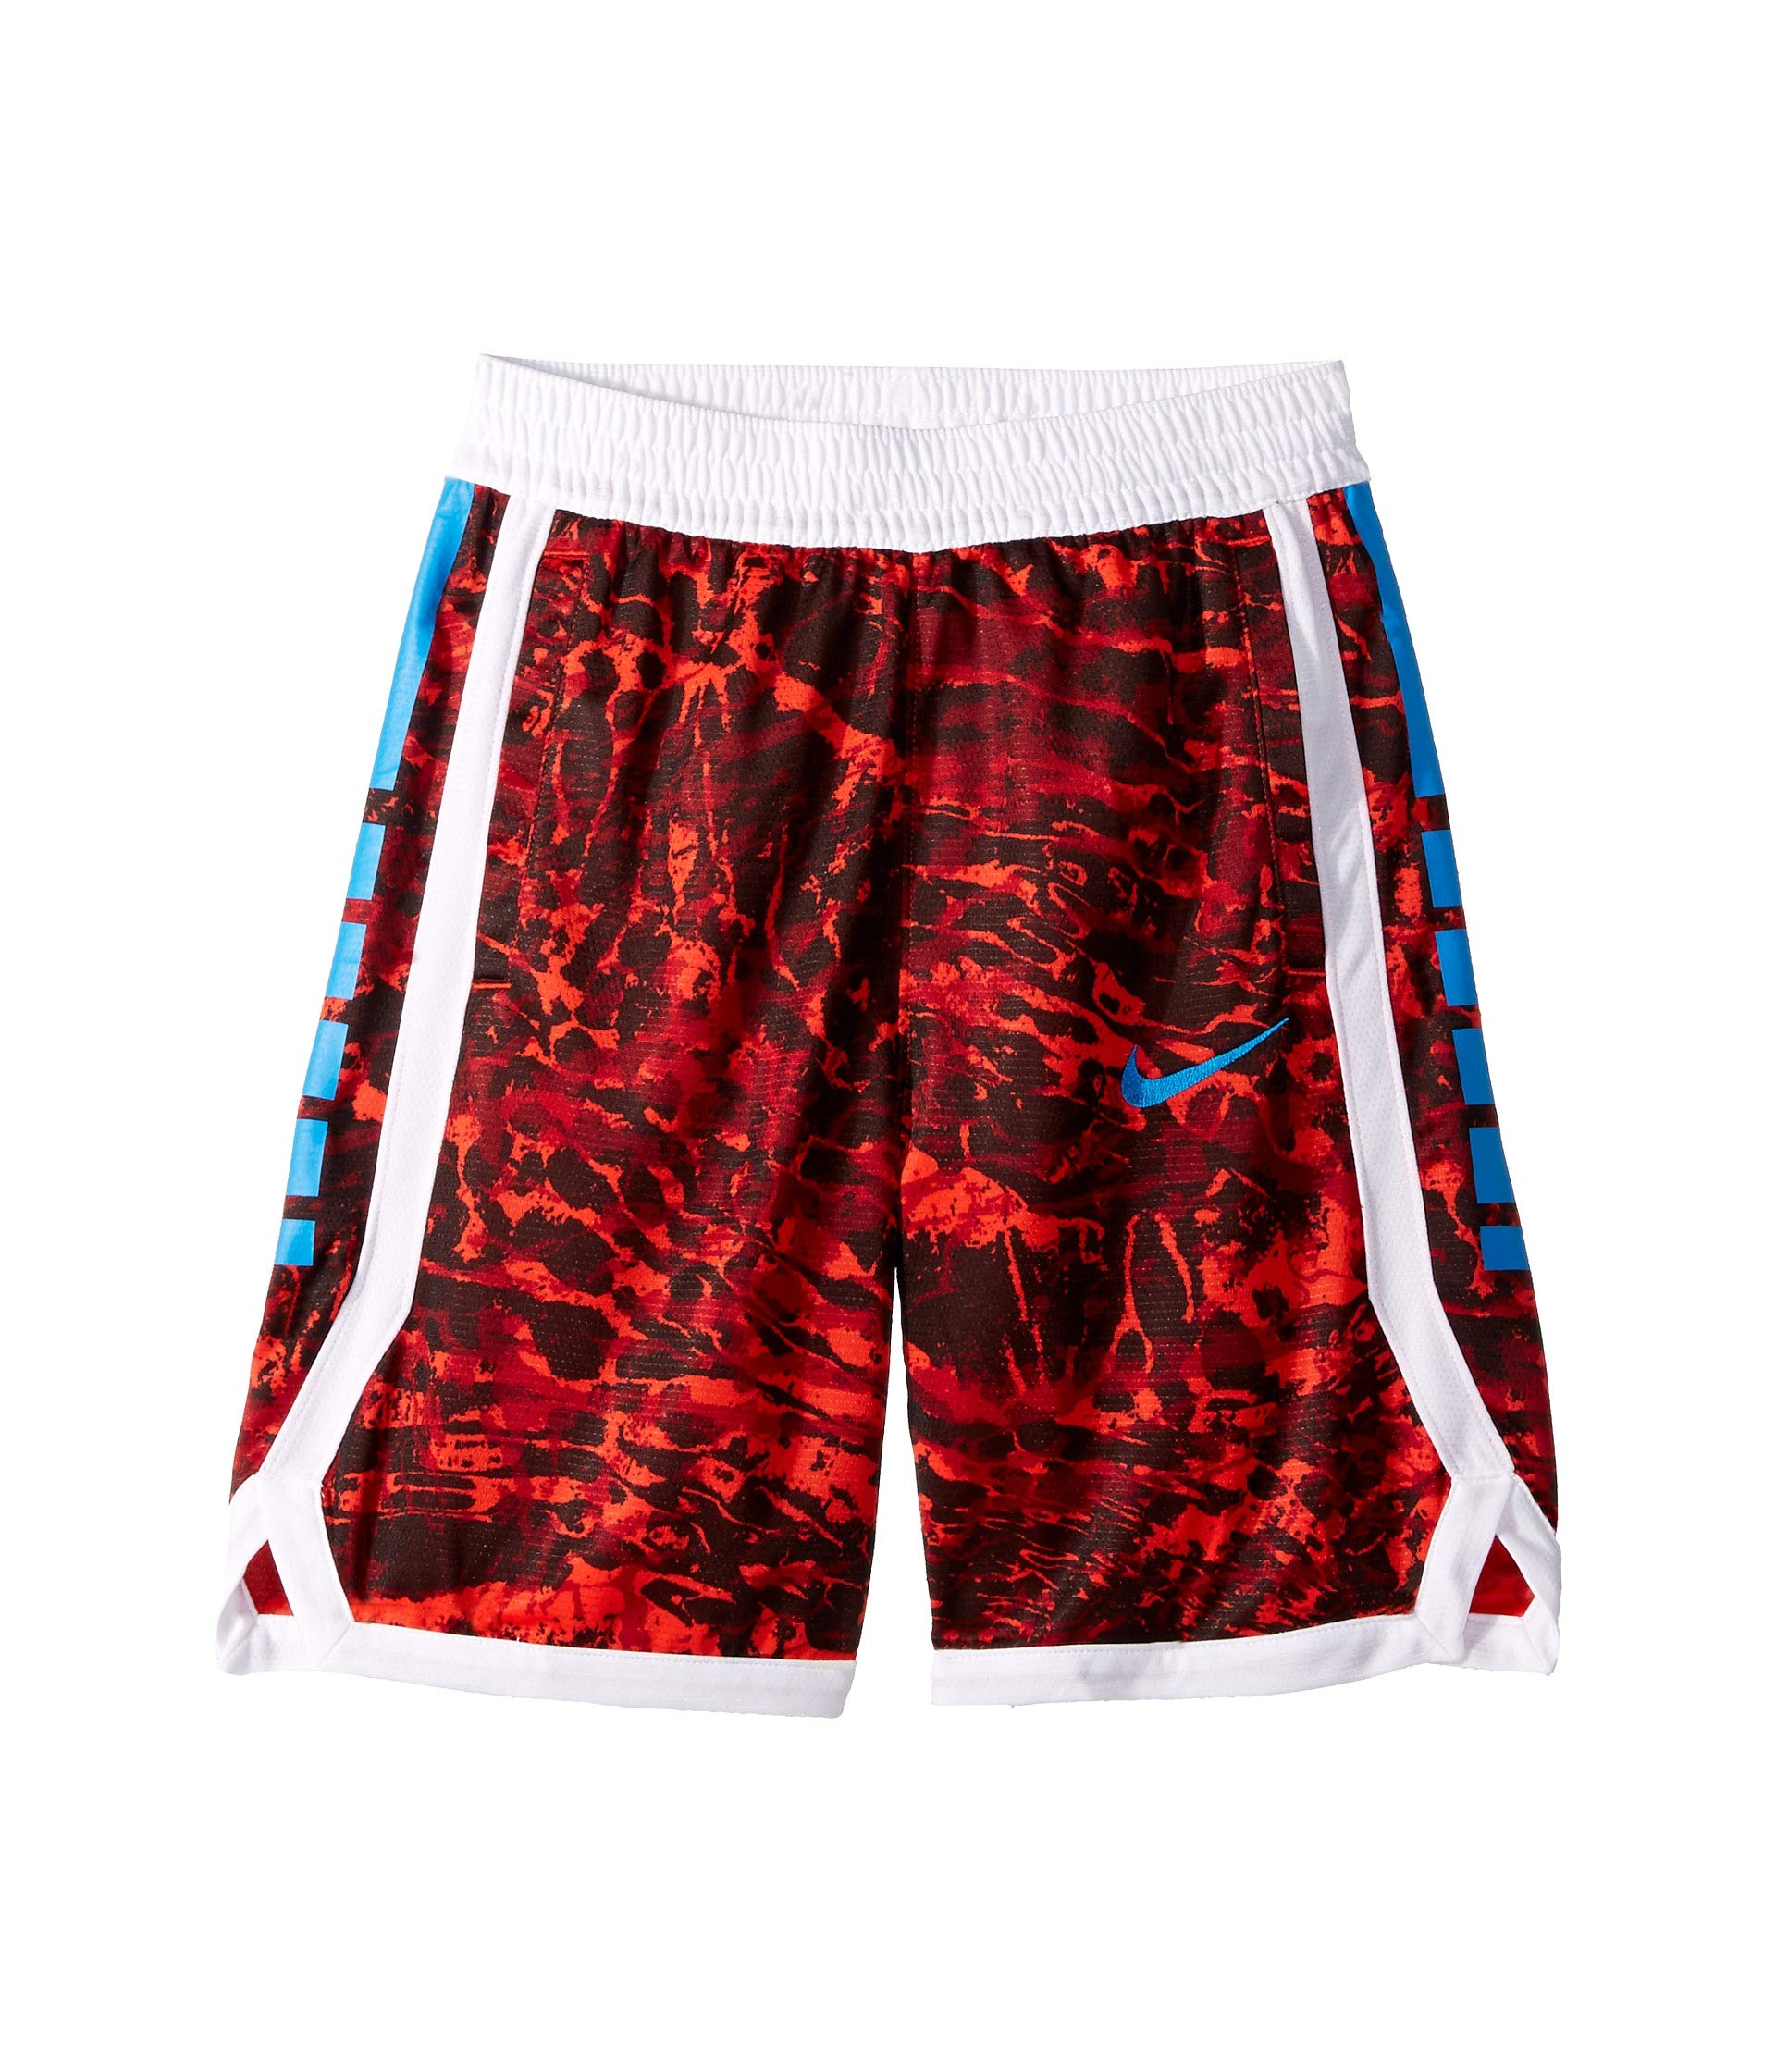 Nike Boy's Dri-FIT Elite Printed Basketball Shorts (Habanero Red/Photo Blue, Large) by Nike